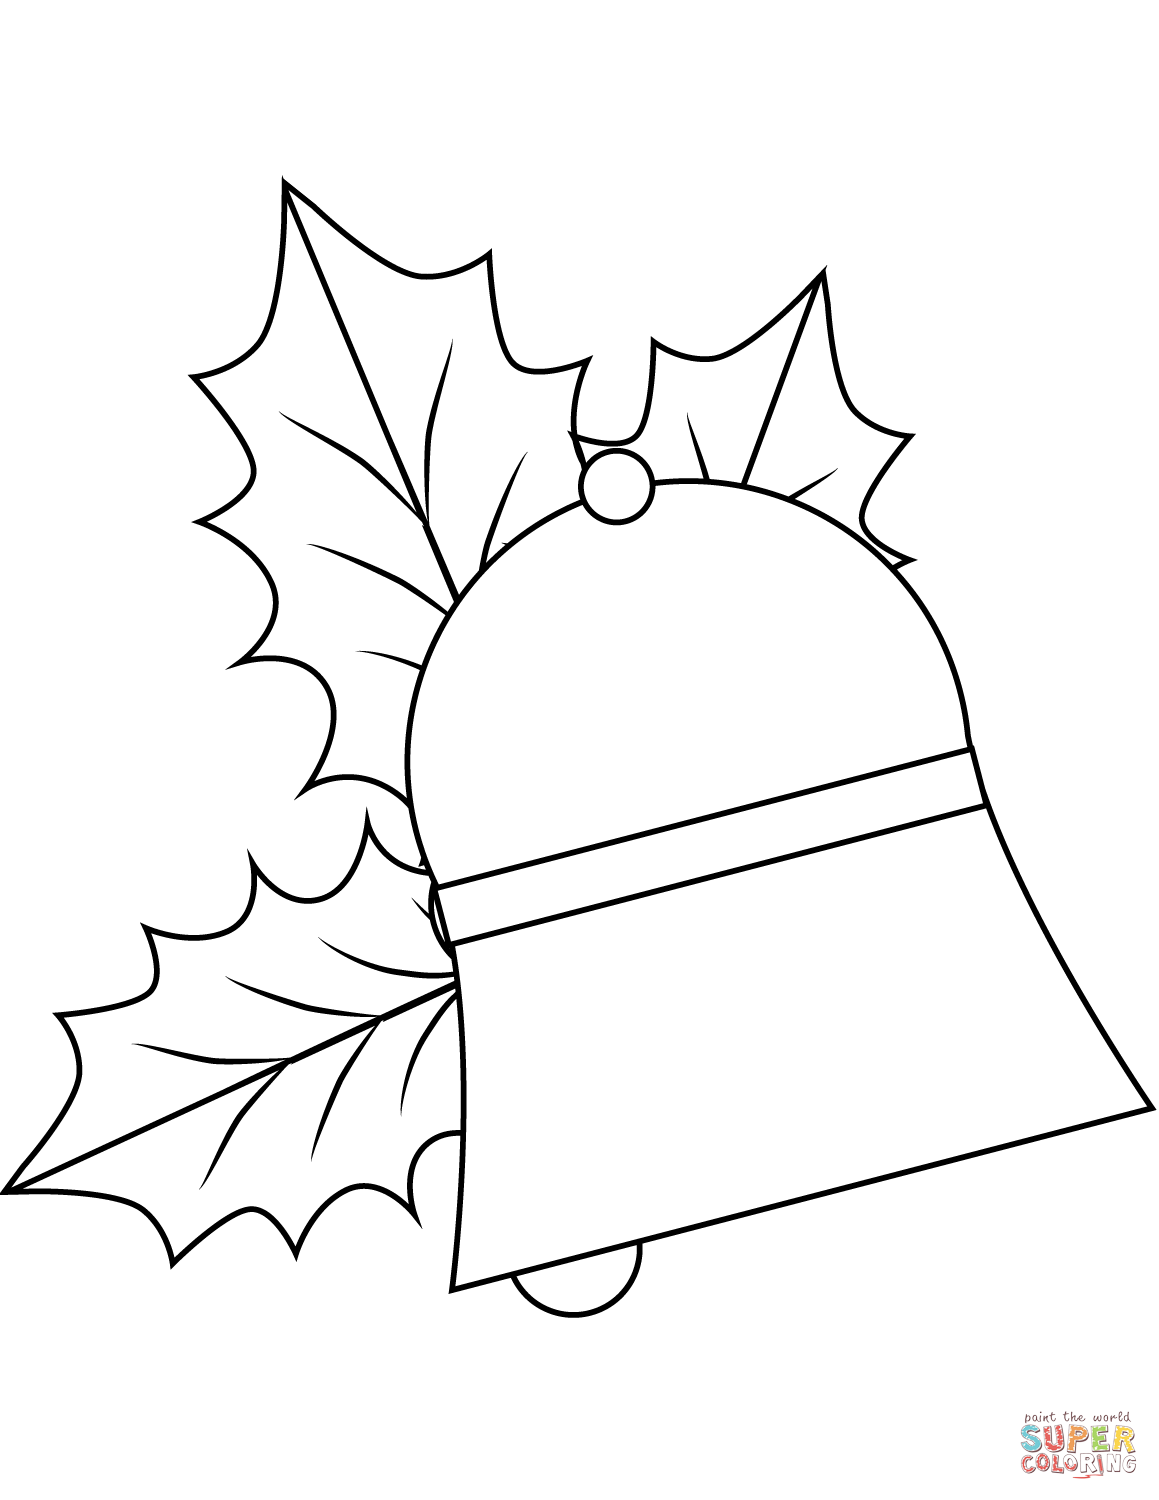 Christmas Bell Coloring Page From Jingle Bells Category Select From 28034 Printable Crafts O Coloring Pages Printable Christmas Coloring Pages Christmas Bells